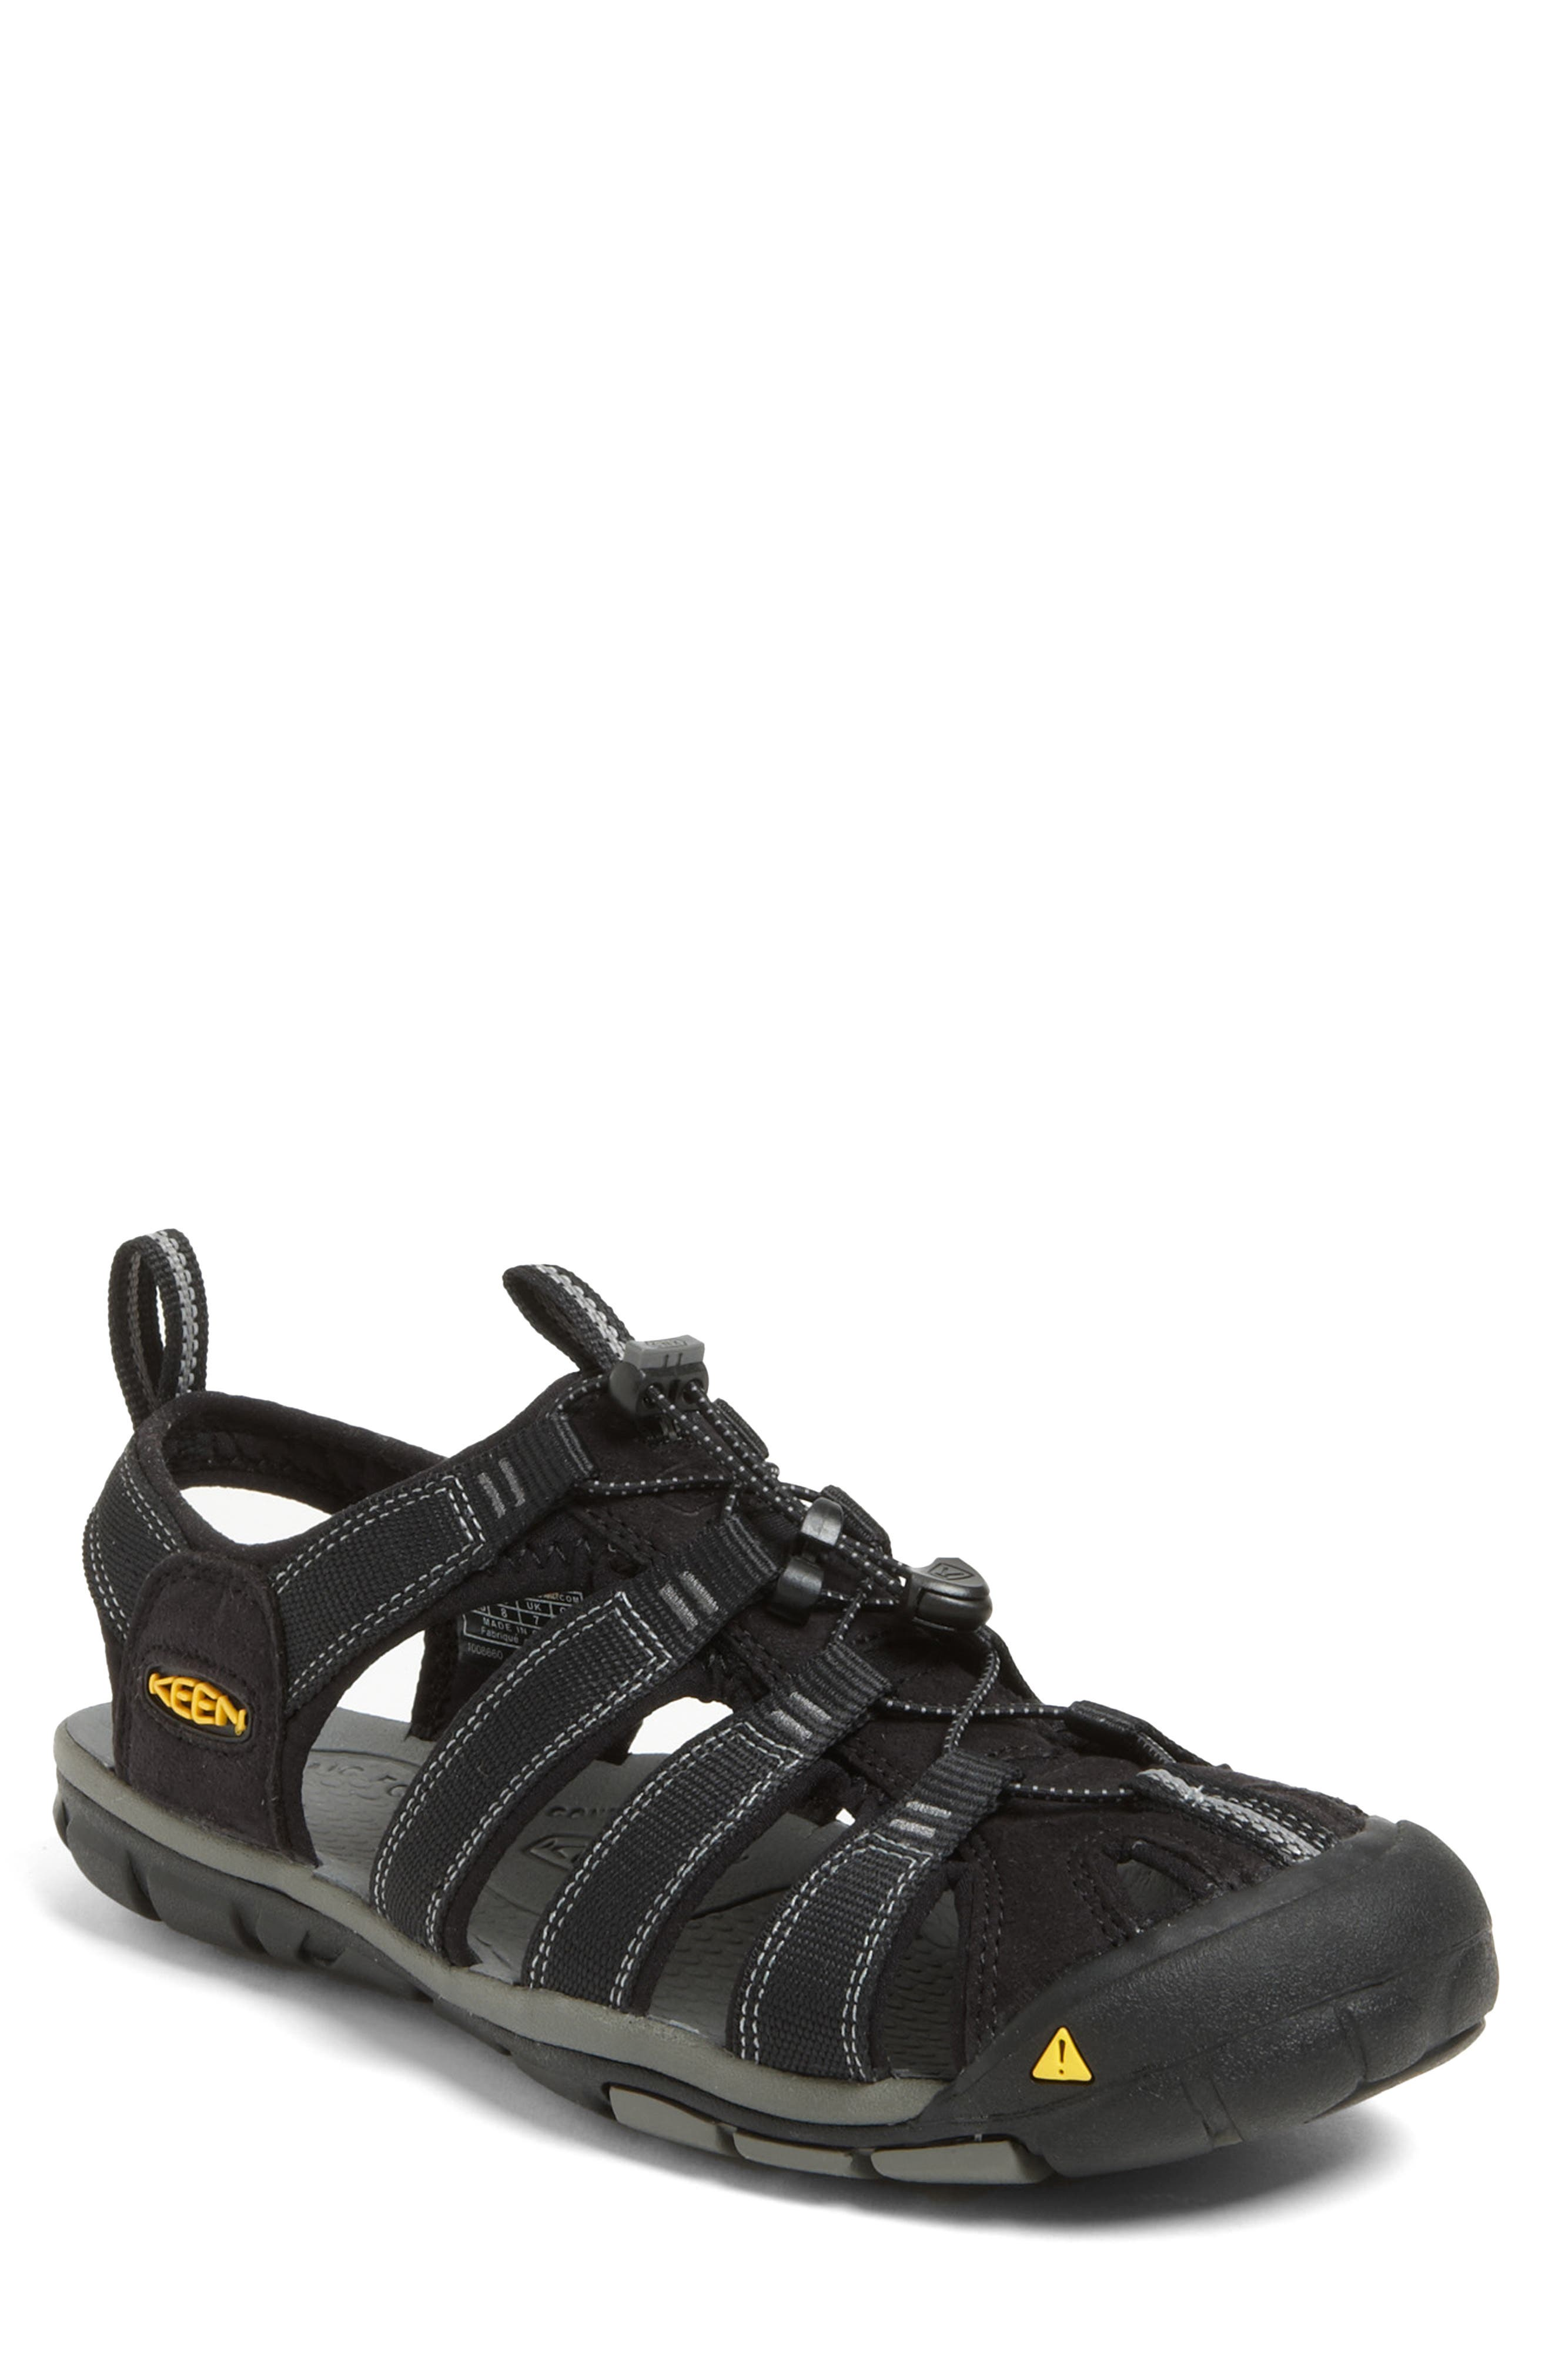 'Clearwater Cnx' Sandal